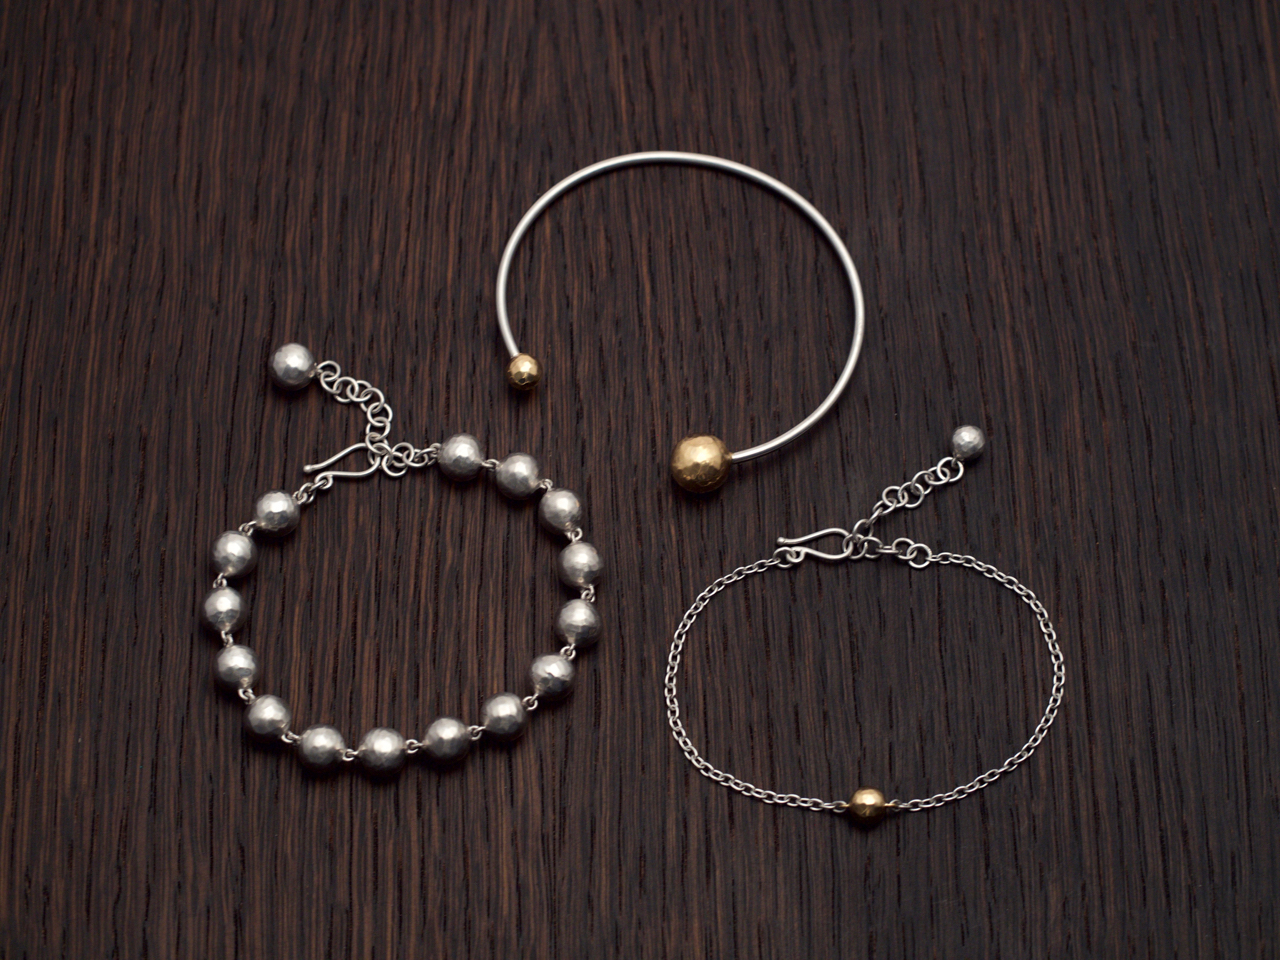 ball bracelets on wood SL a